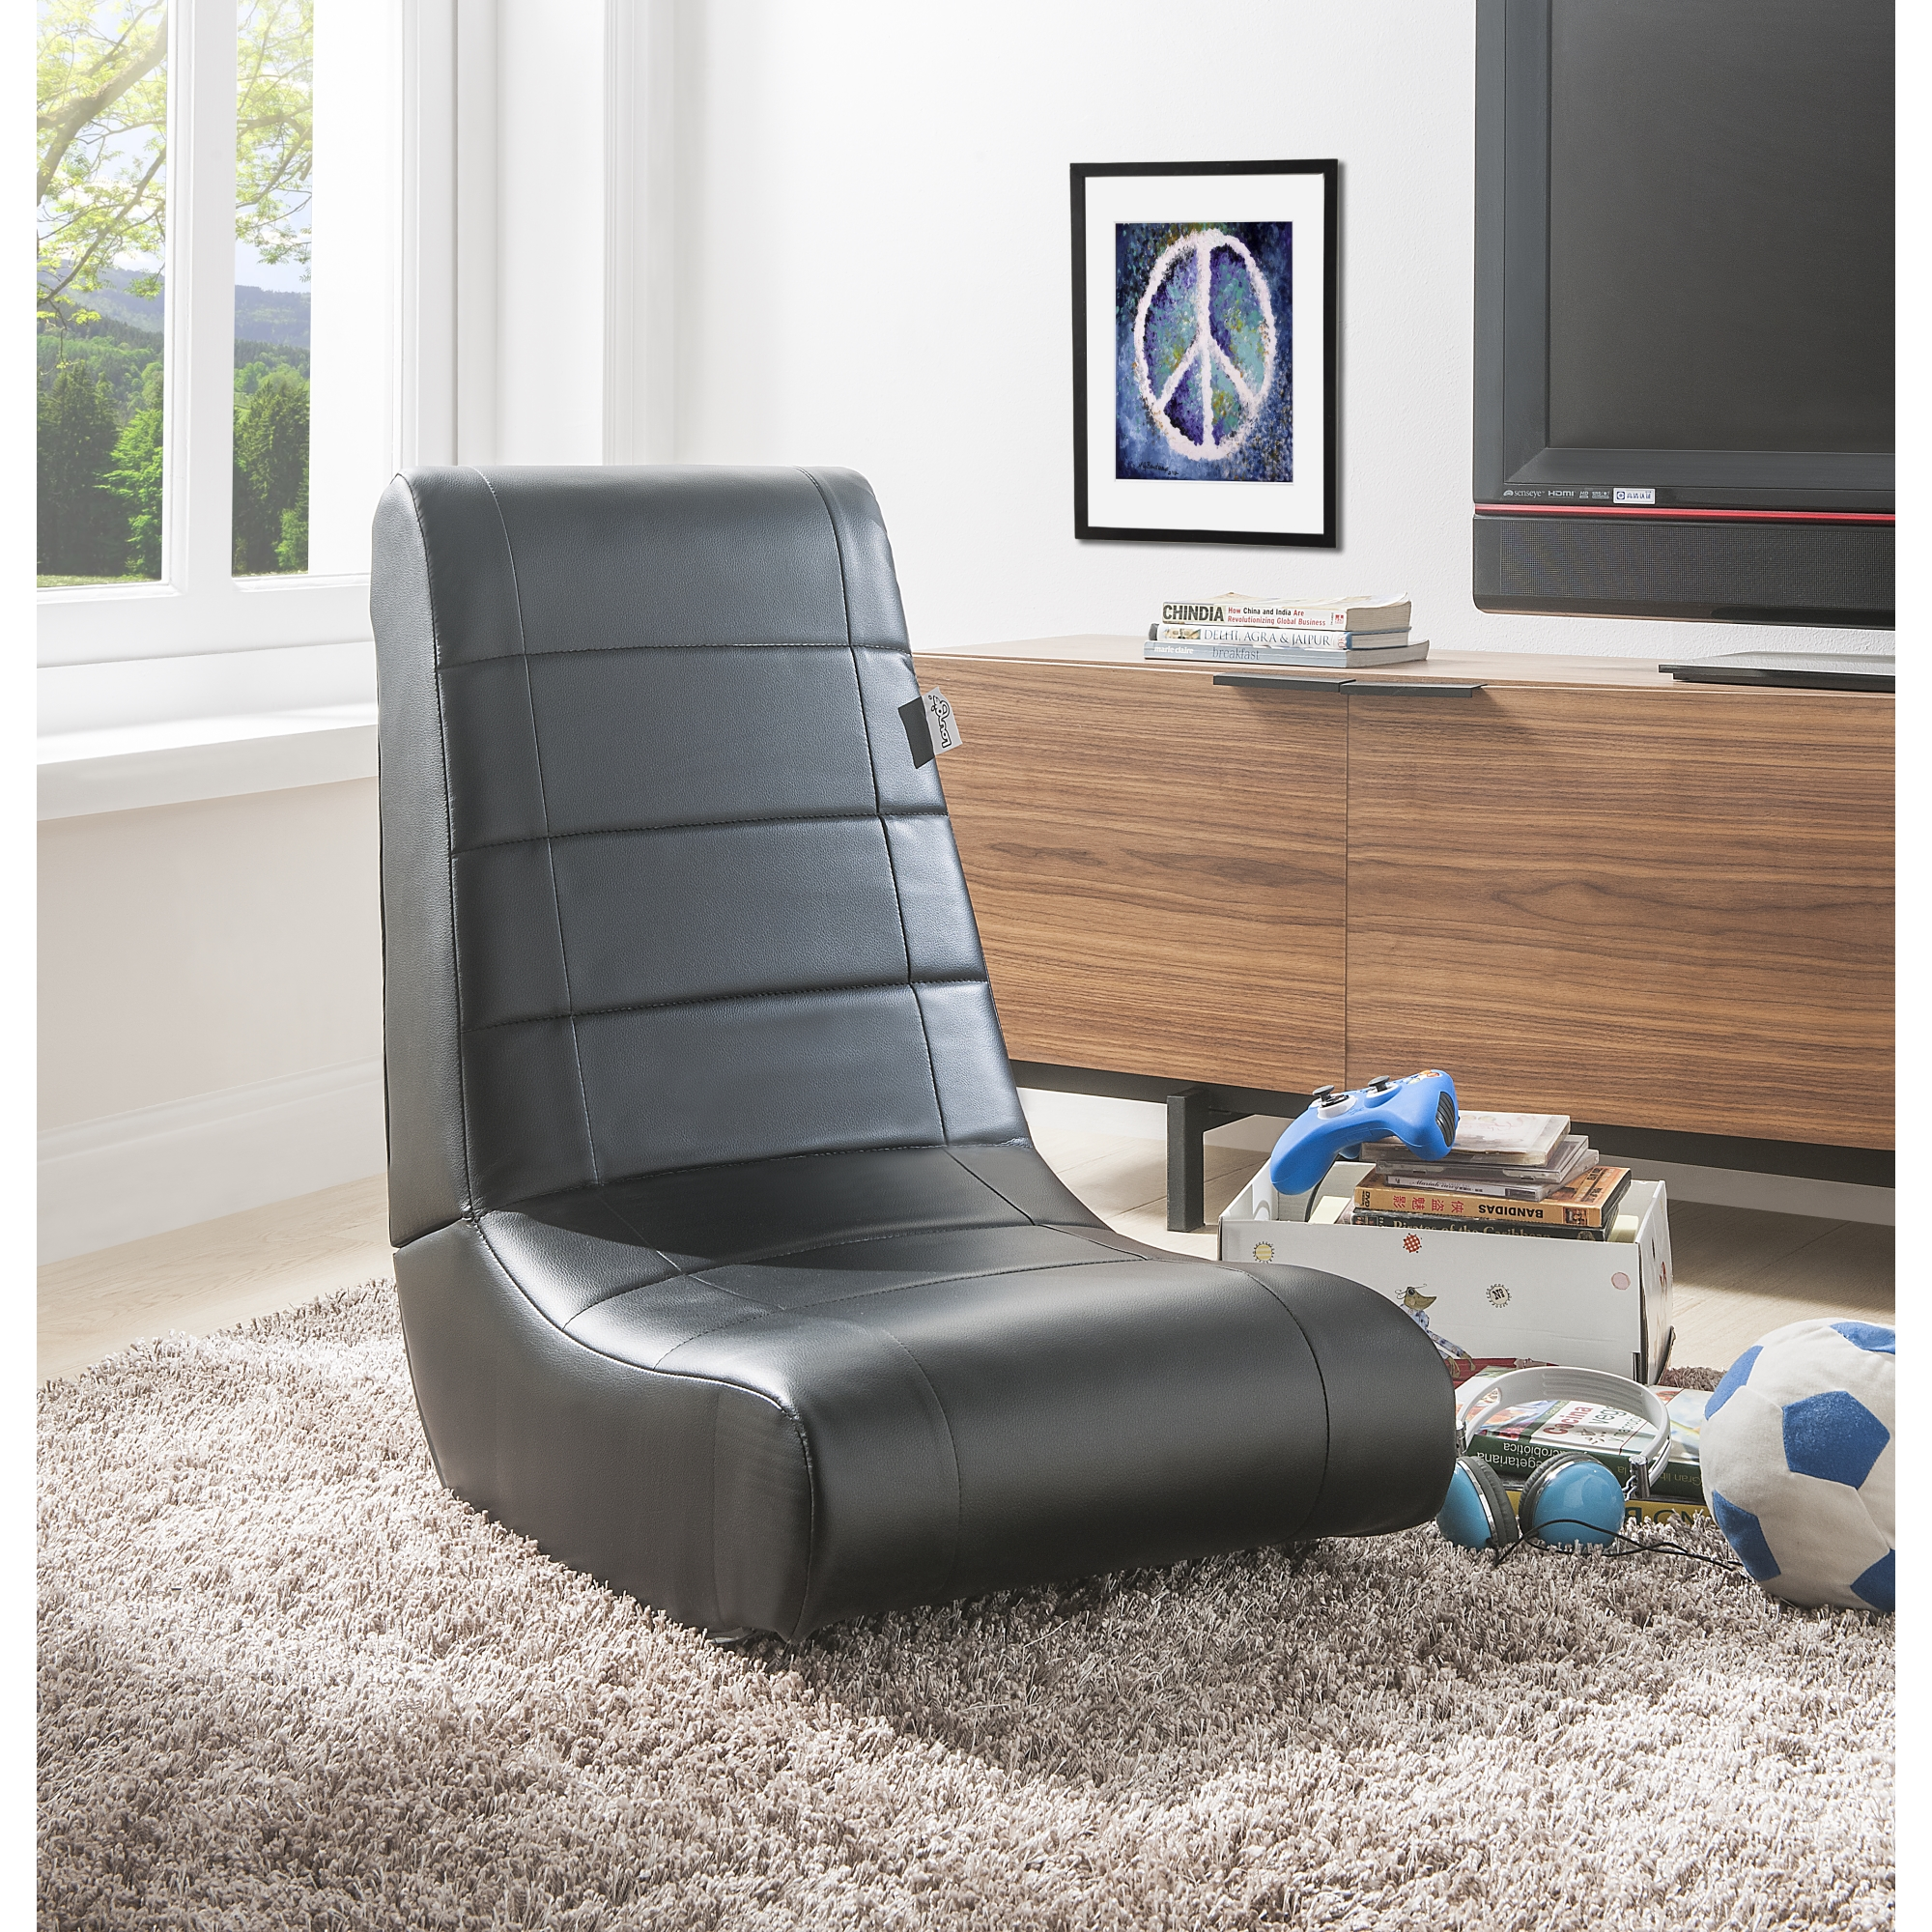 Loungie Black PU/Black PU PU Leather Chair For Kids, Teens, Adults, Boys Or Girls